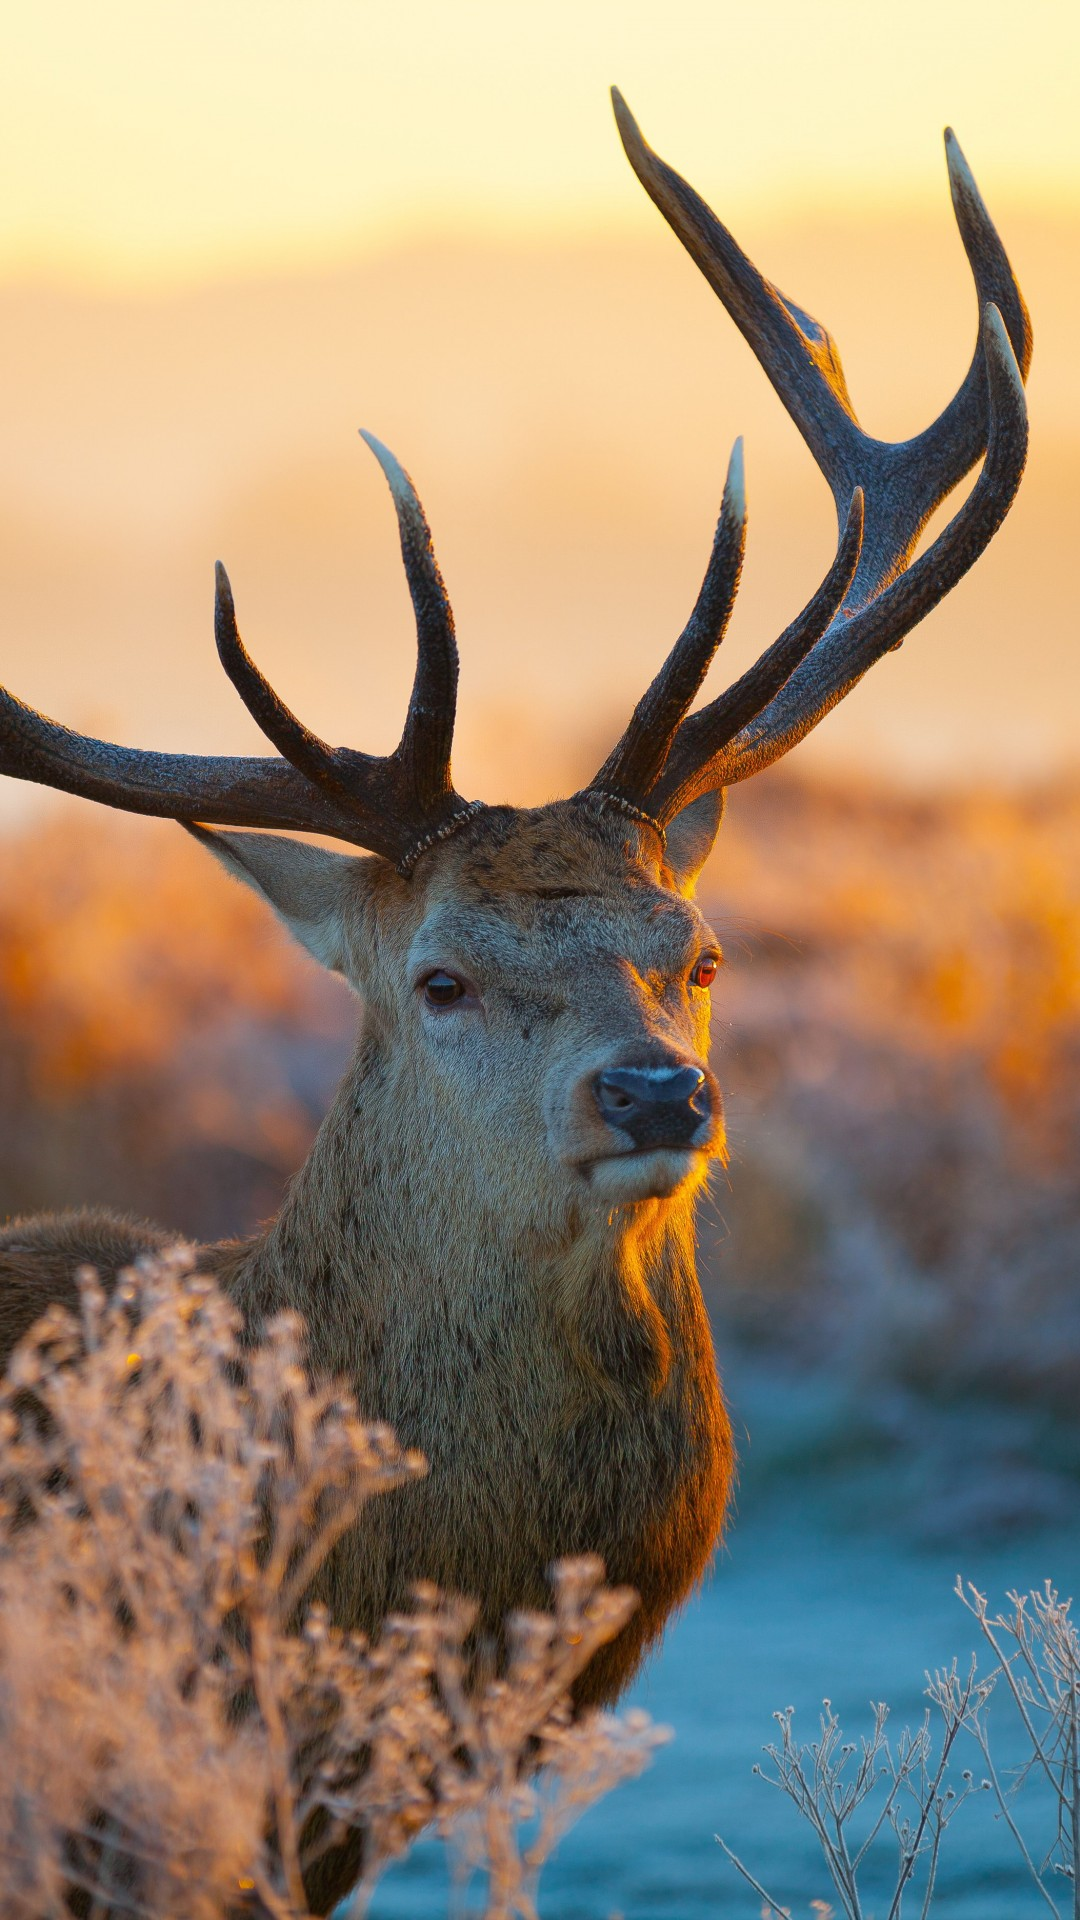 Images Of Nature Wallpaper With Quotes Wallpaper Deer Savanna Sunset Cute Animals Animals 4480